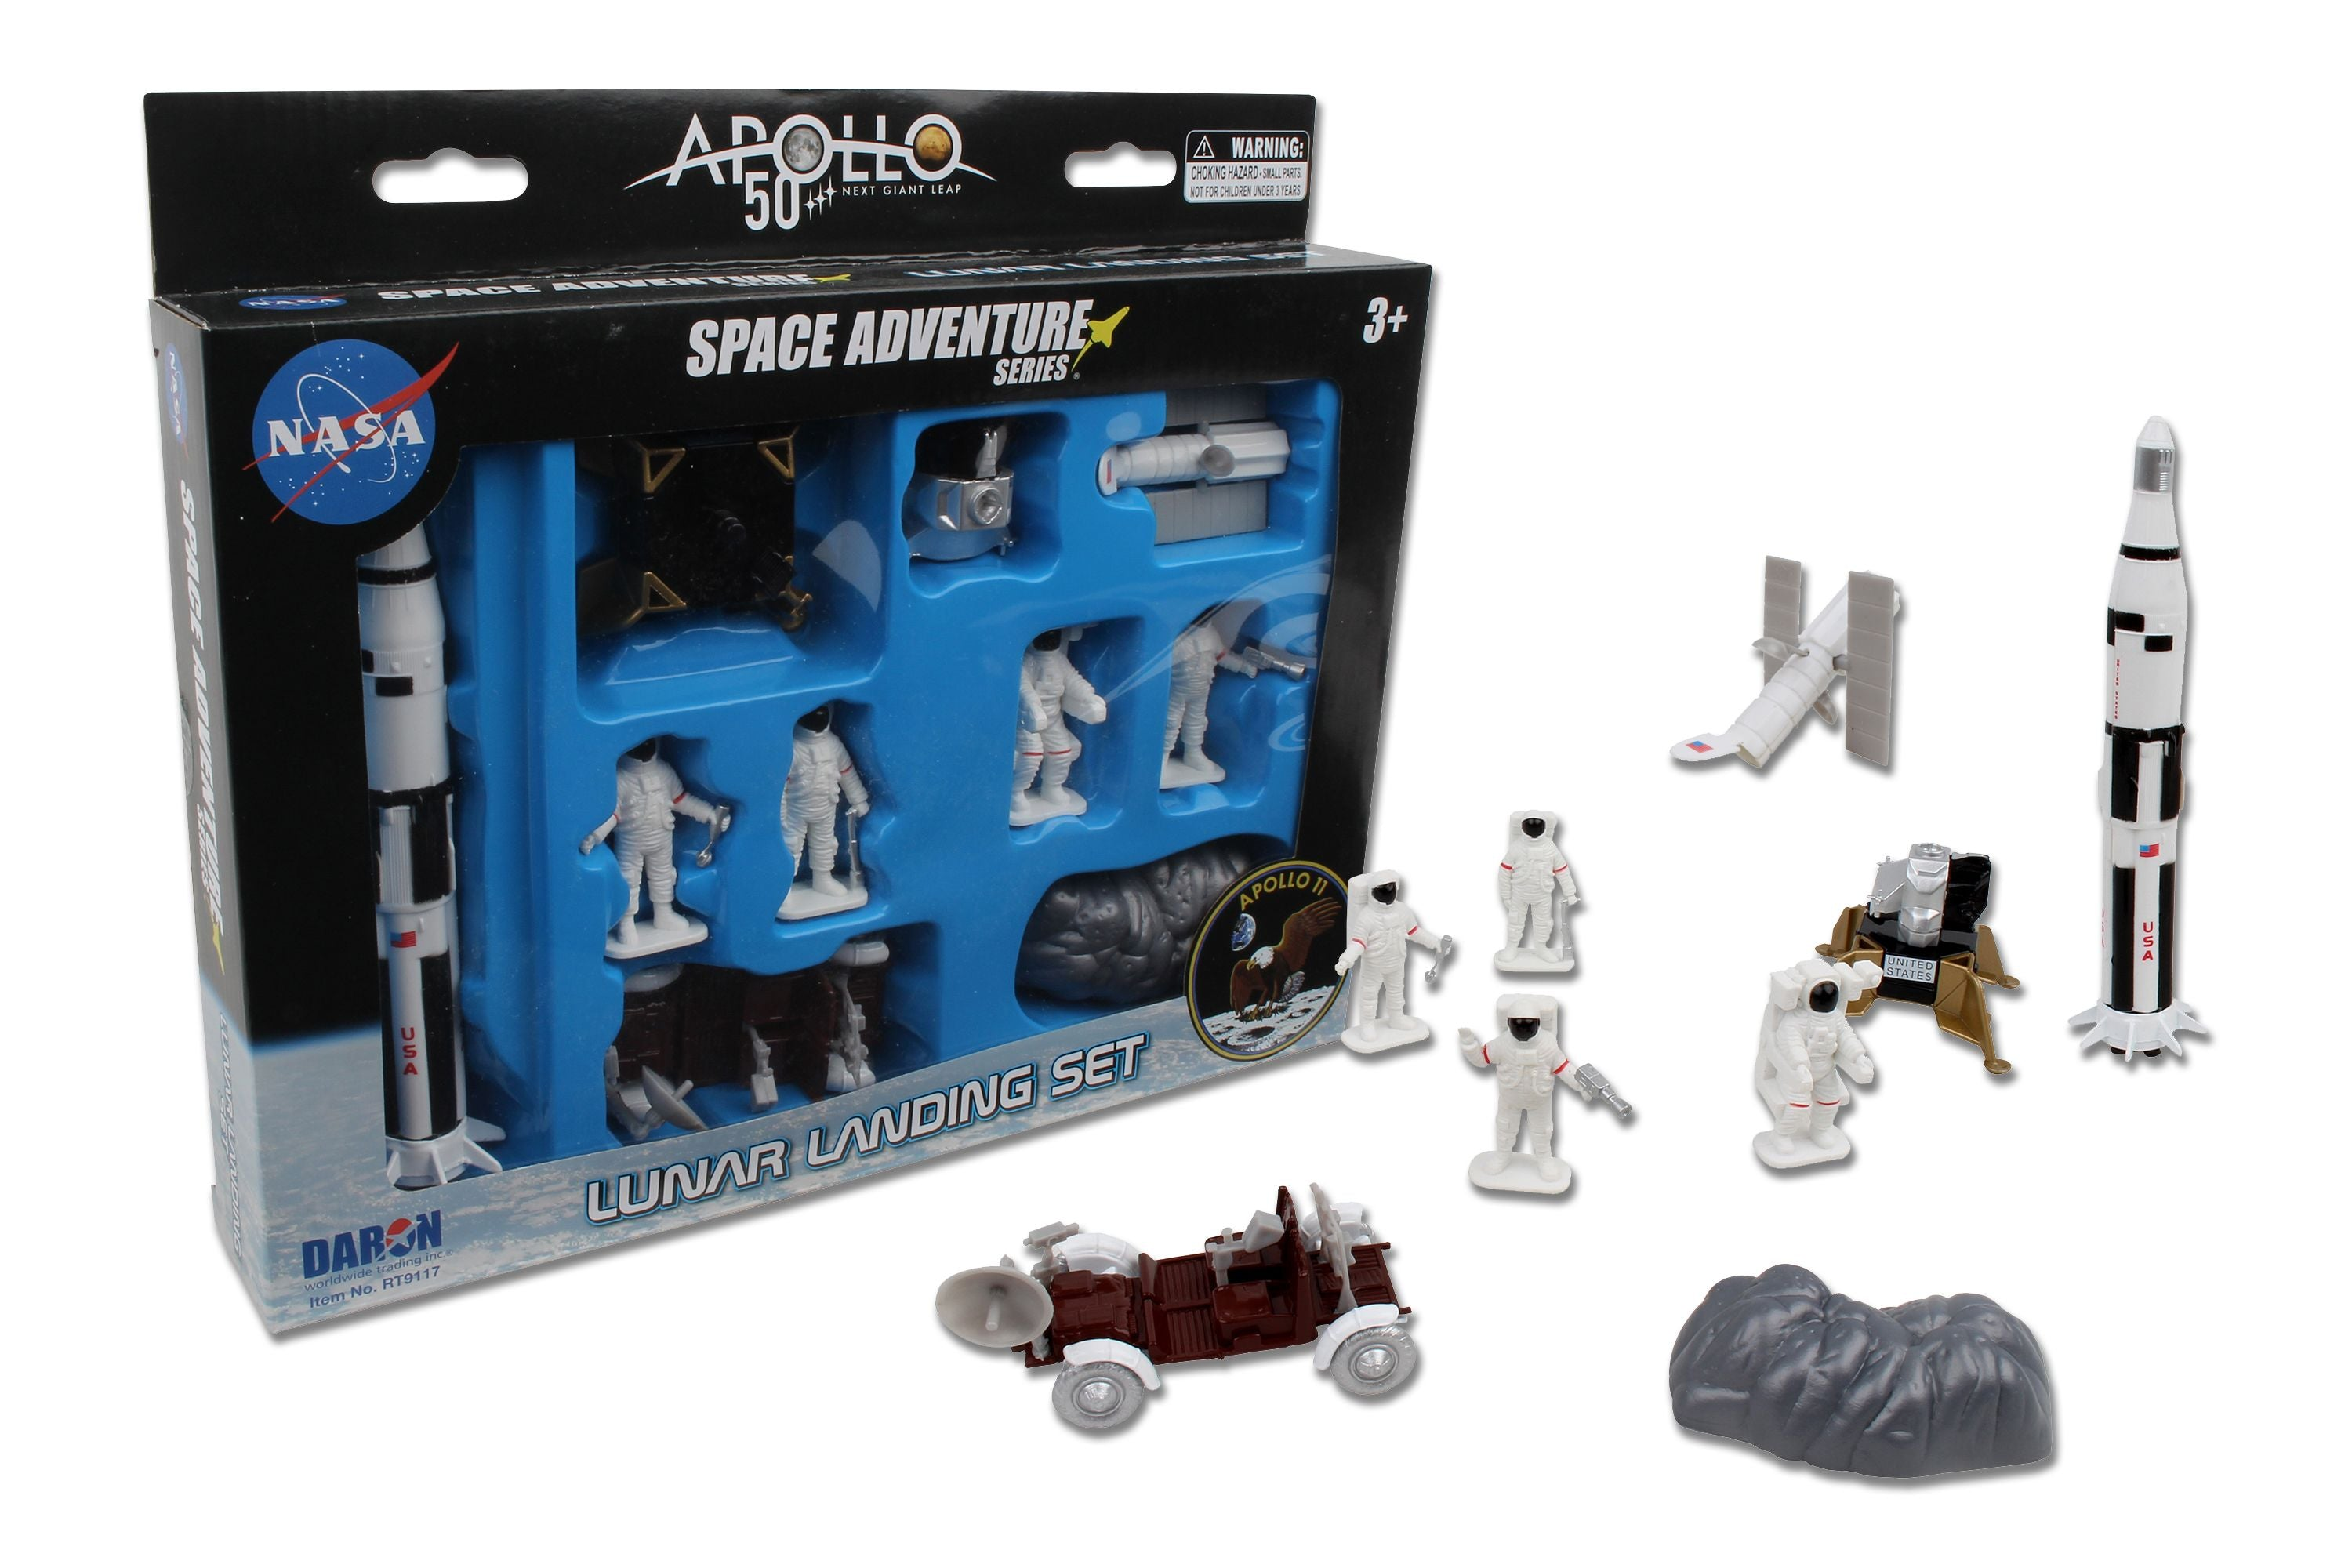 MOON LANDING SET -Apollo 50TH ANNIVERSARY - Sky Crew PTY